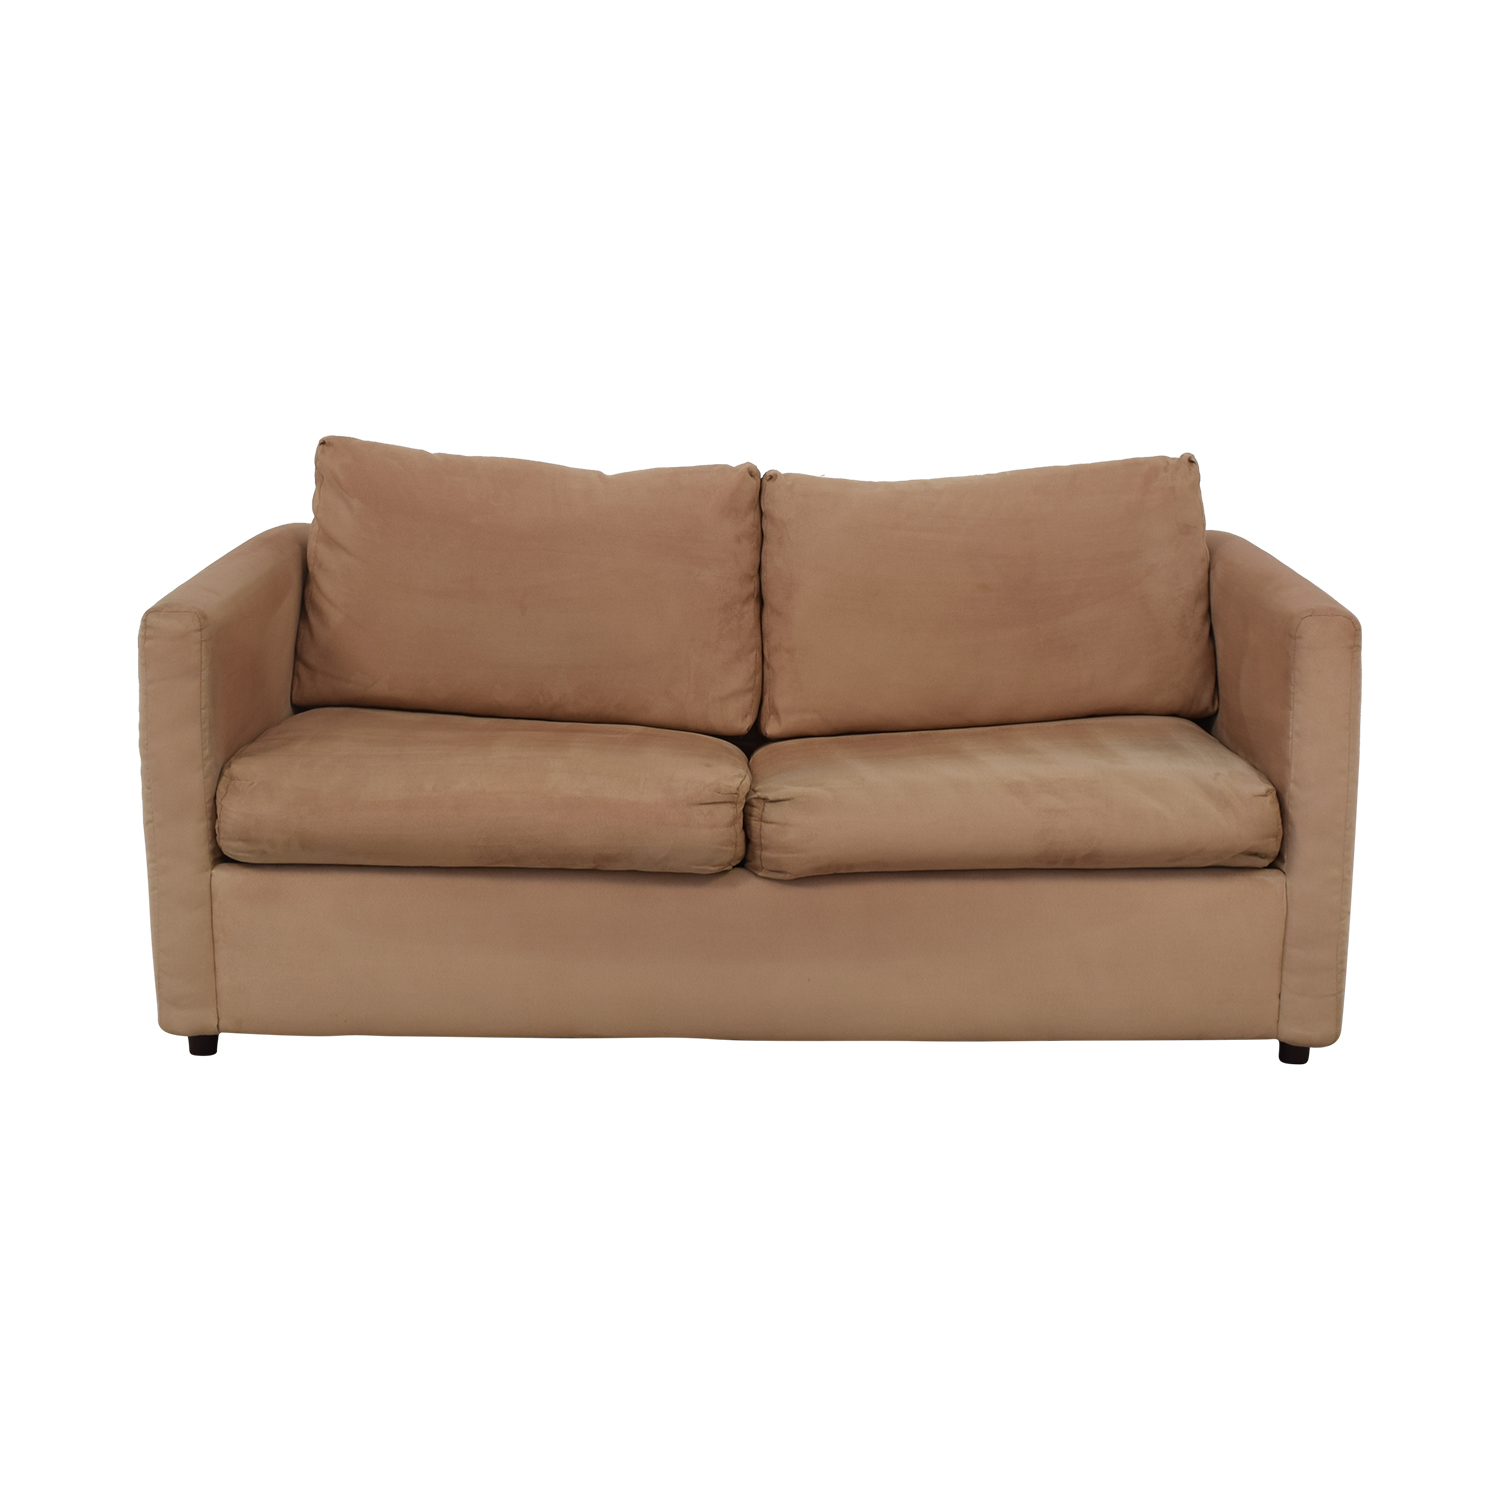 shop Rowe Furniture Two Cushion Sleeper Sofa Rowe Furniture Sofas